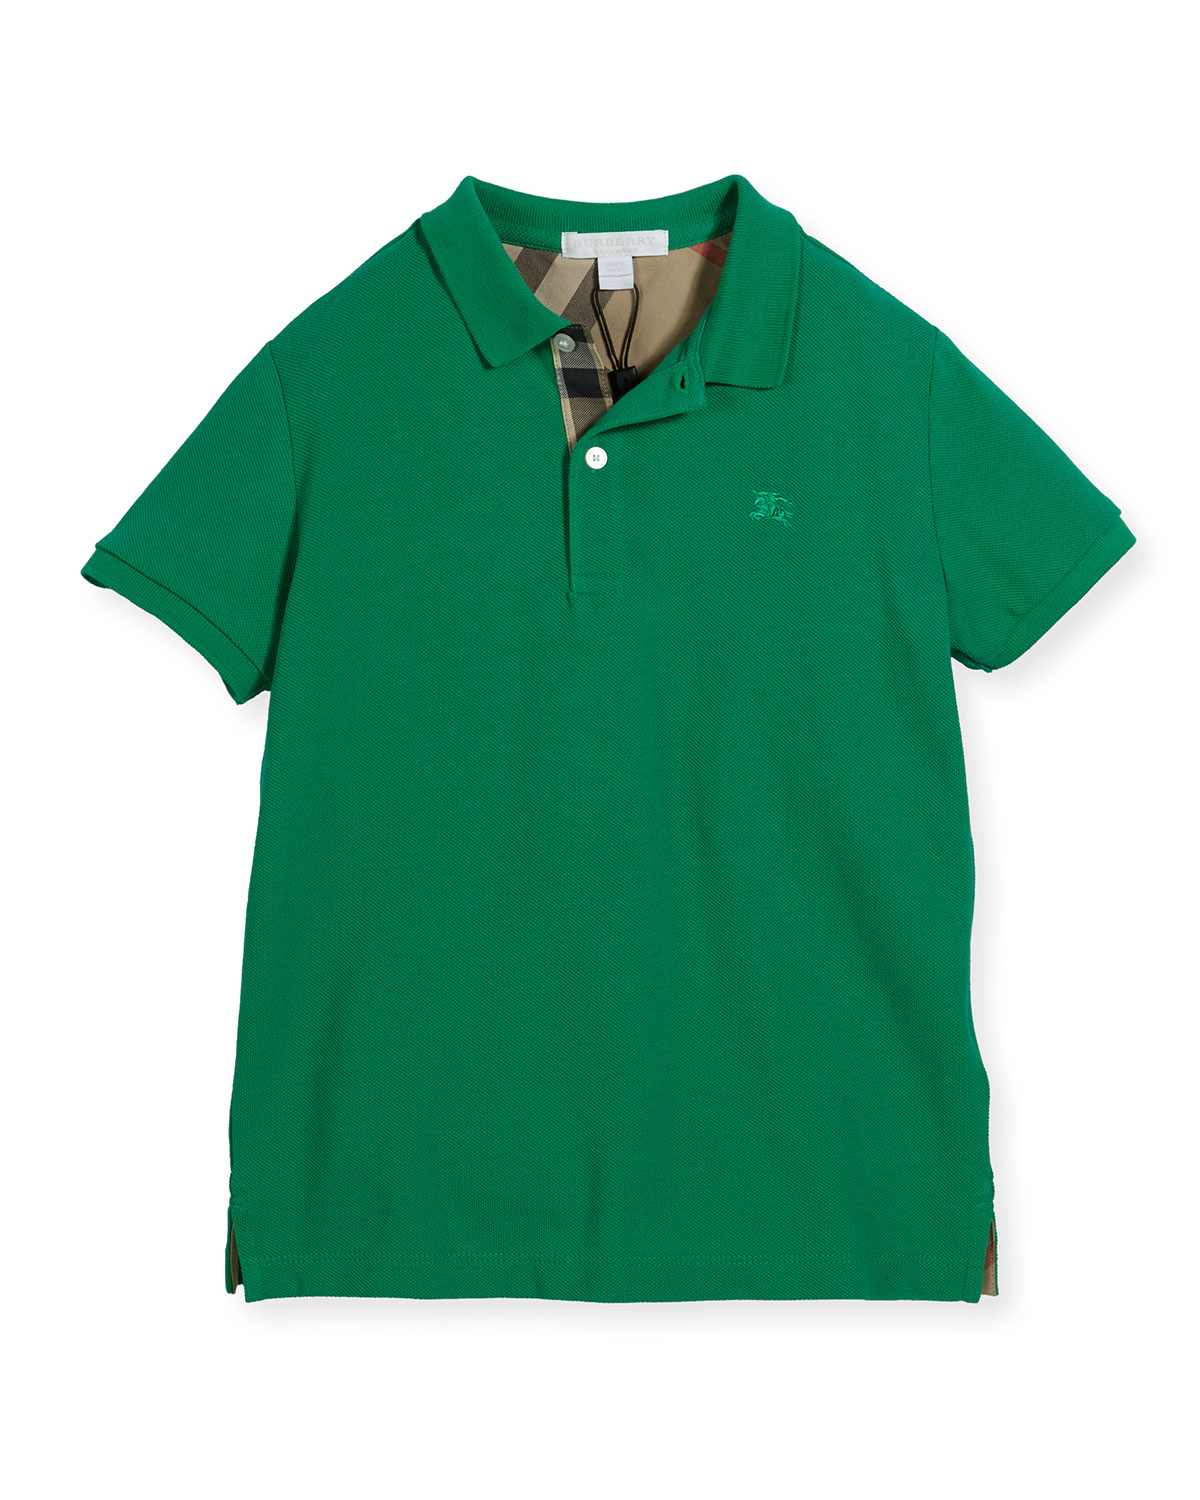 Palmer Short-Sleeve Pique Cotton Polo Shirt, Bright Green, Size 6M-3